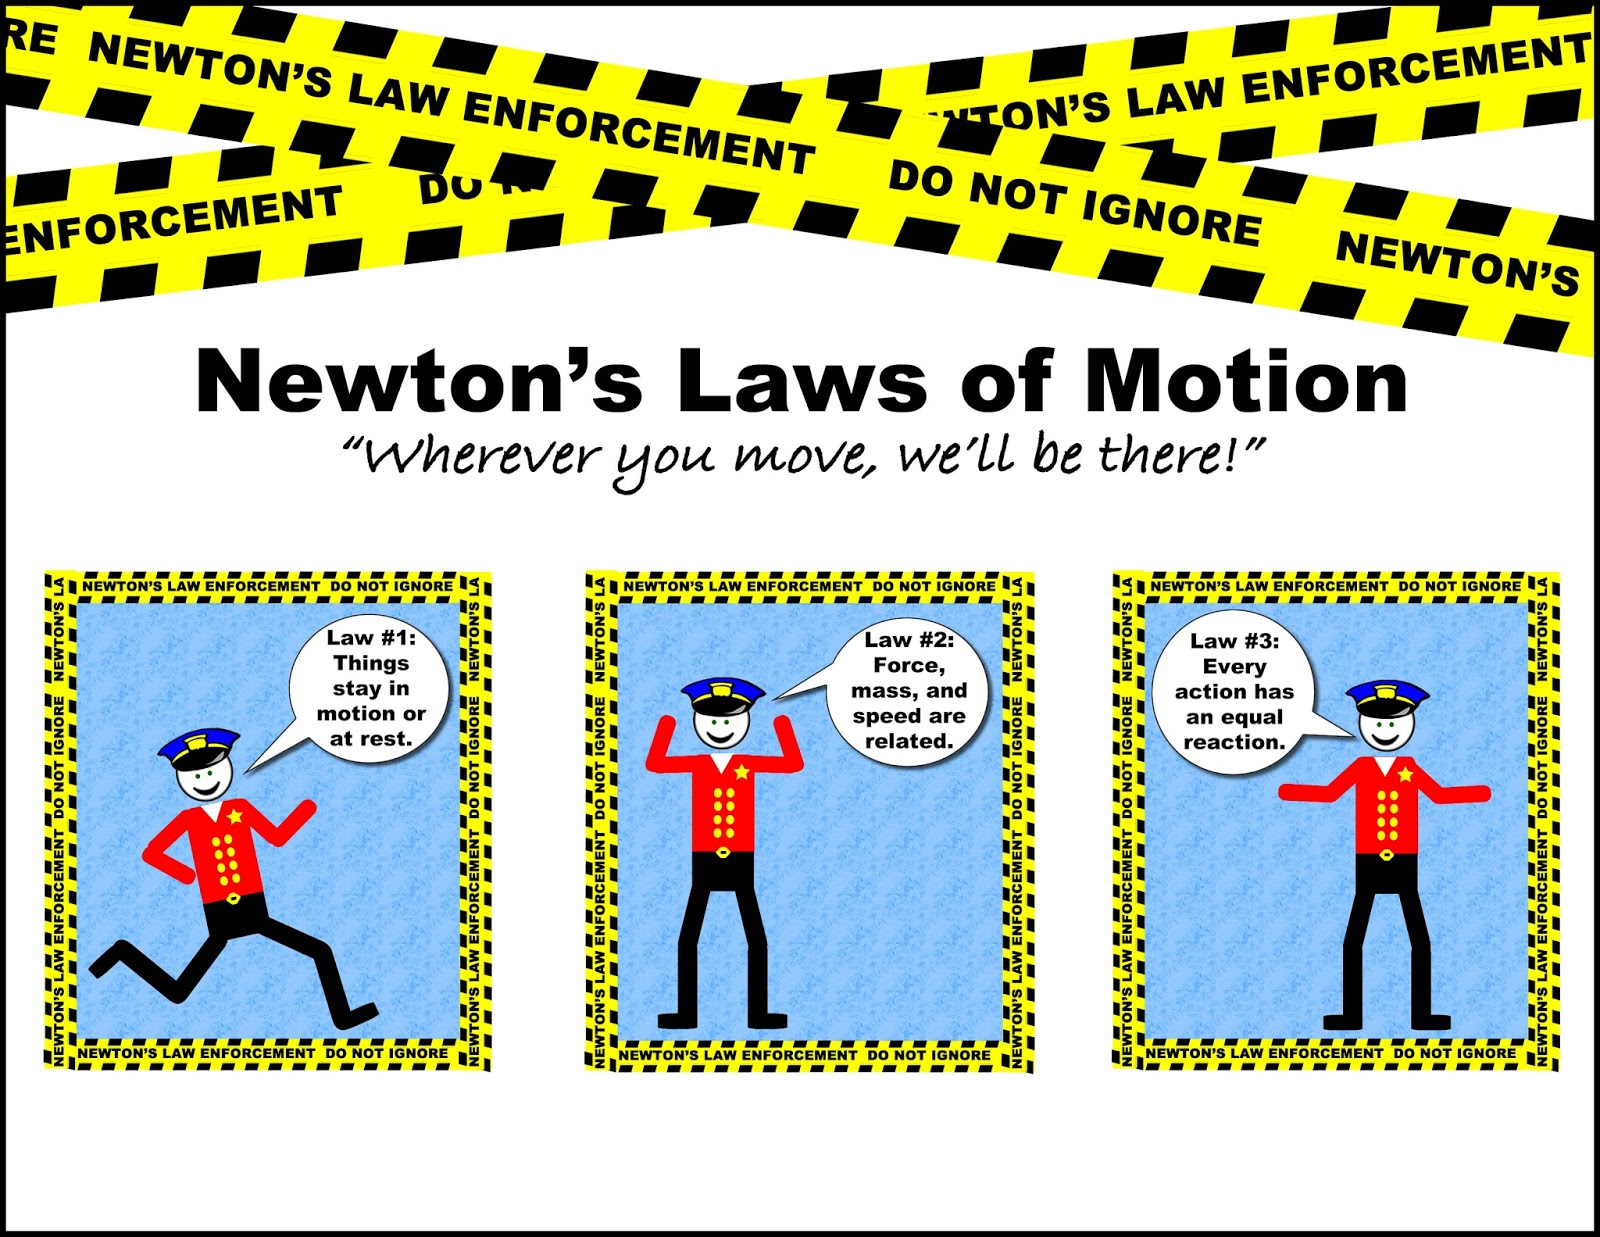 How many laws does Newton have? 21